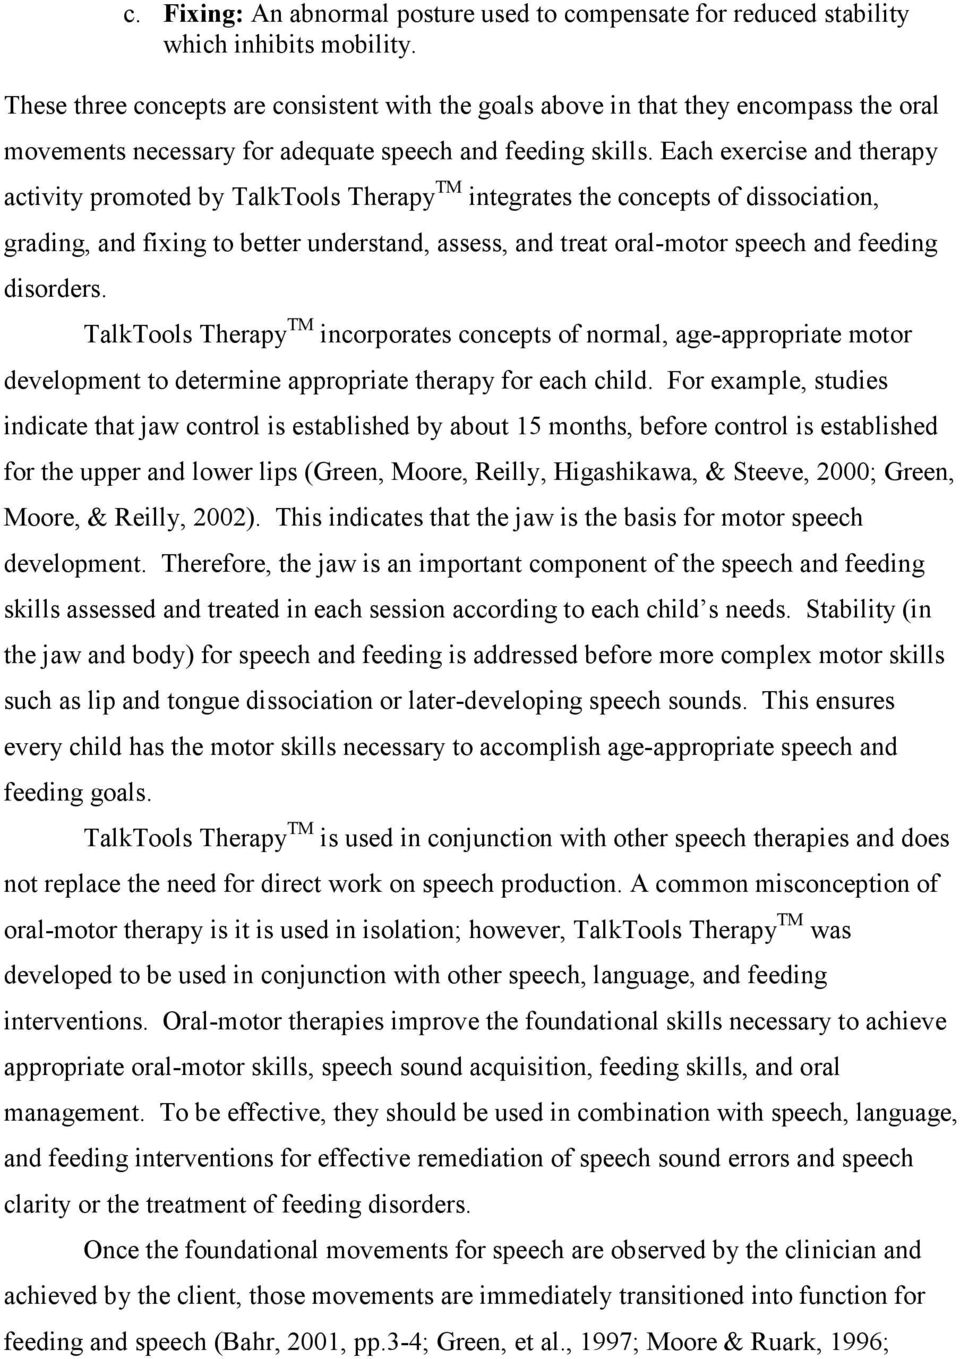 Each exercise and therapy activity promoted by TalkTools Therapy TM integrates the concepts of dissociation, grading, and fixing to better understand, assess, and treat oral-motor speech and feeding